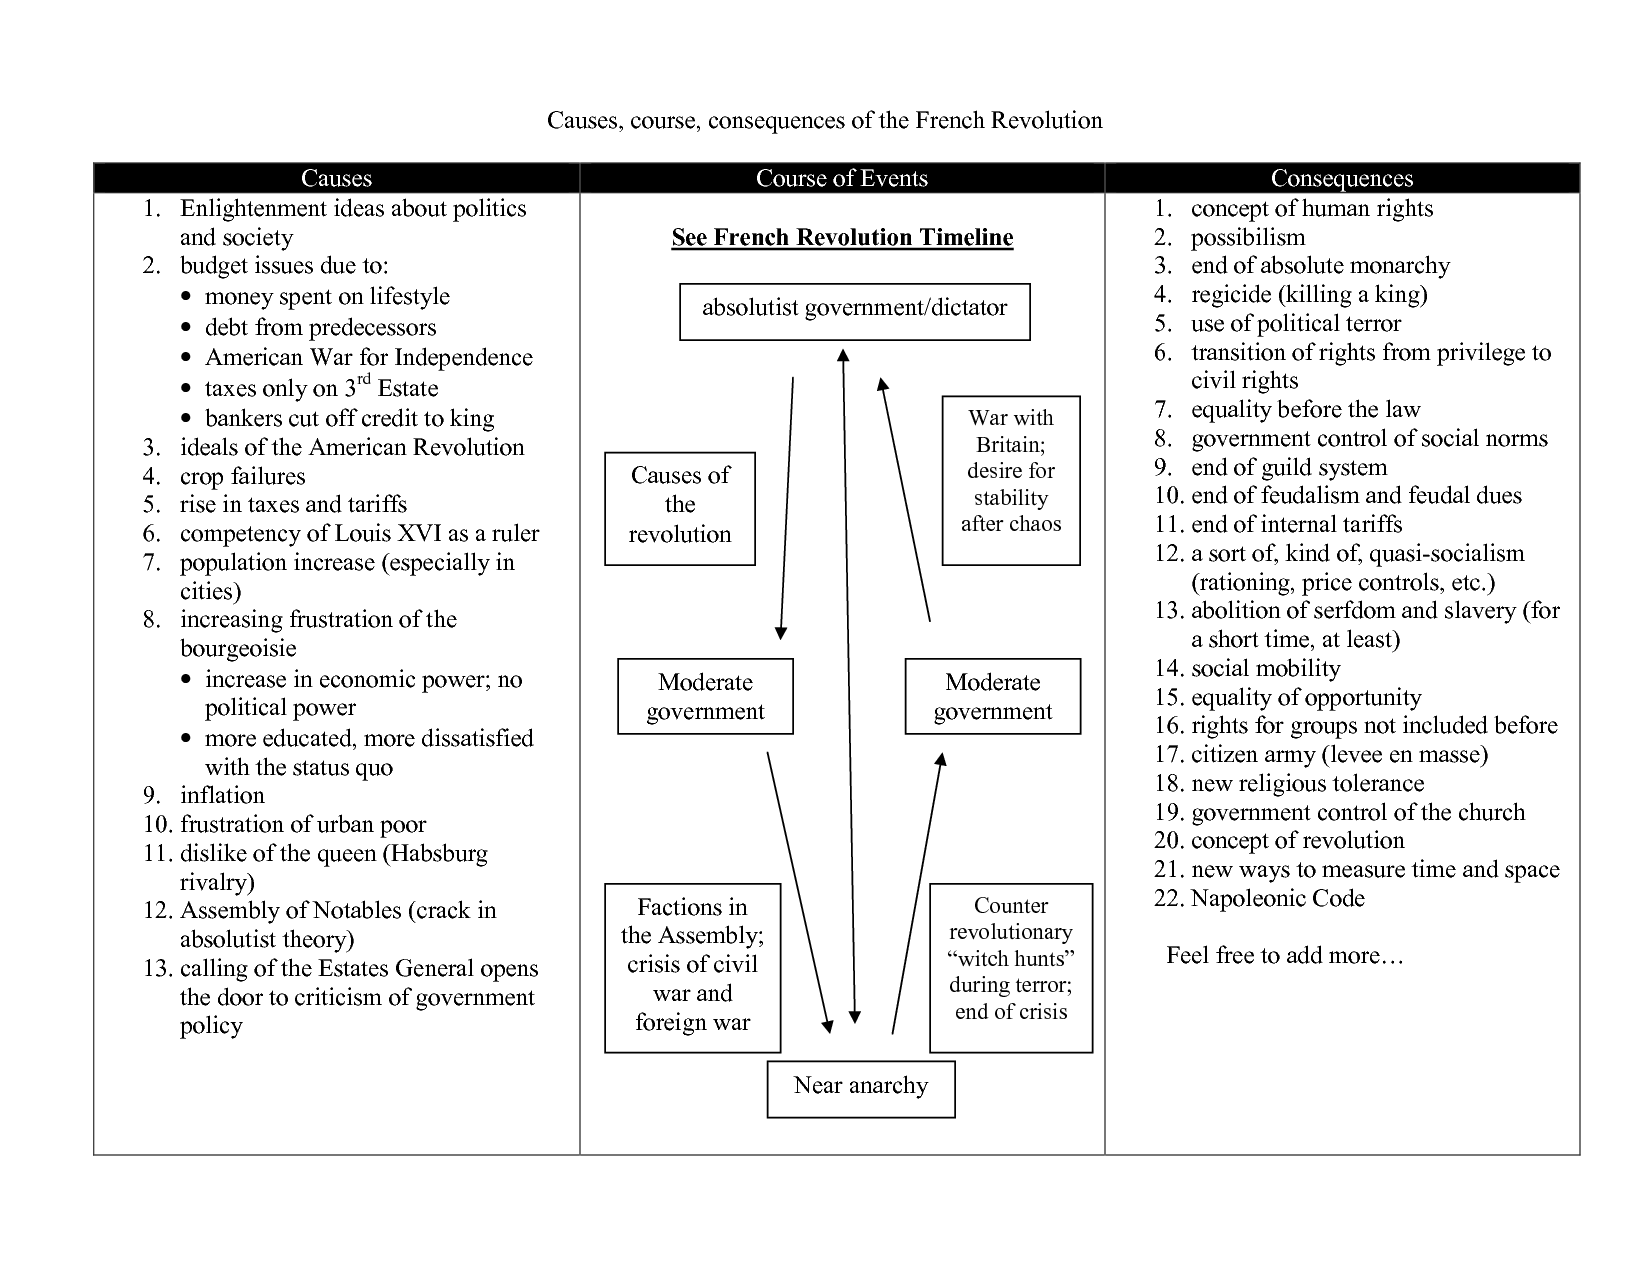 Causes of the French Revolution of 1789